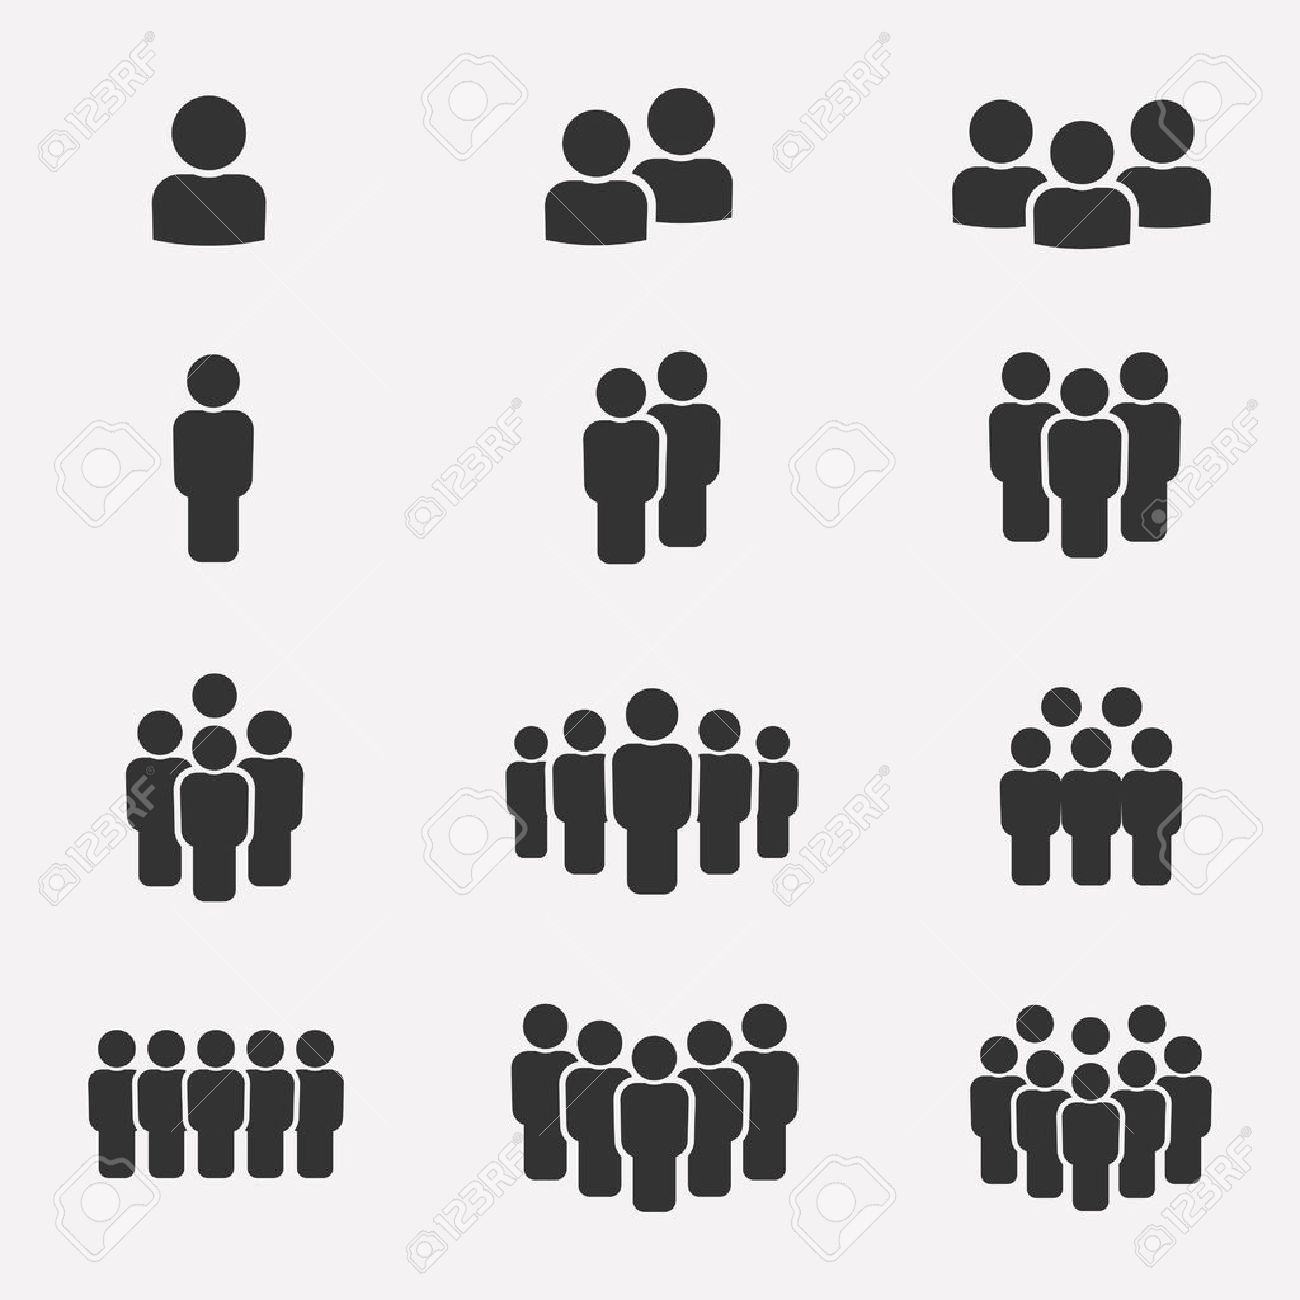 Team icon set. Group of people icons isolated on a white background. Business team icons collection. Crowd of people black silhouettes simple. Team icons in flat style. - 59728634